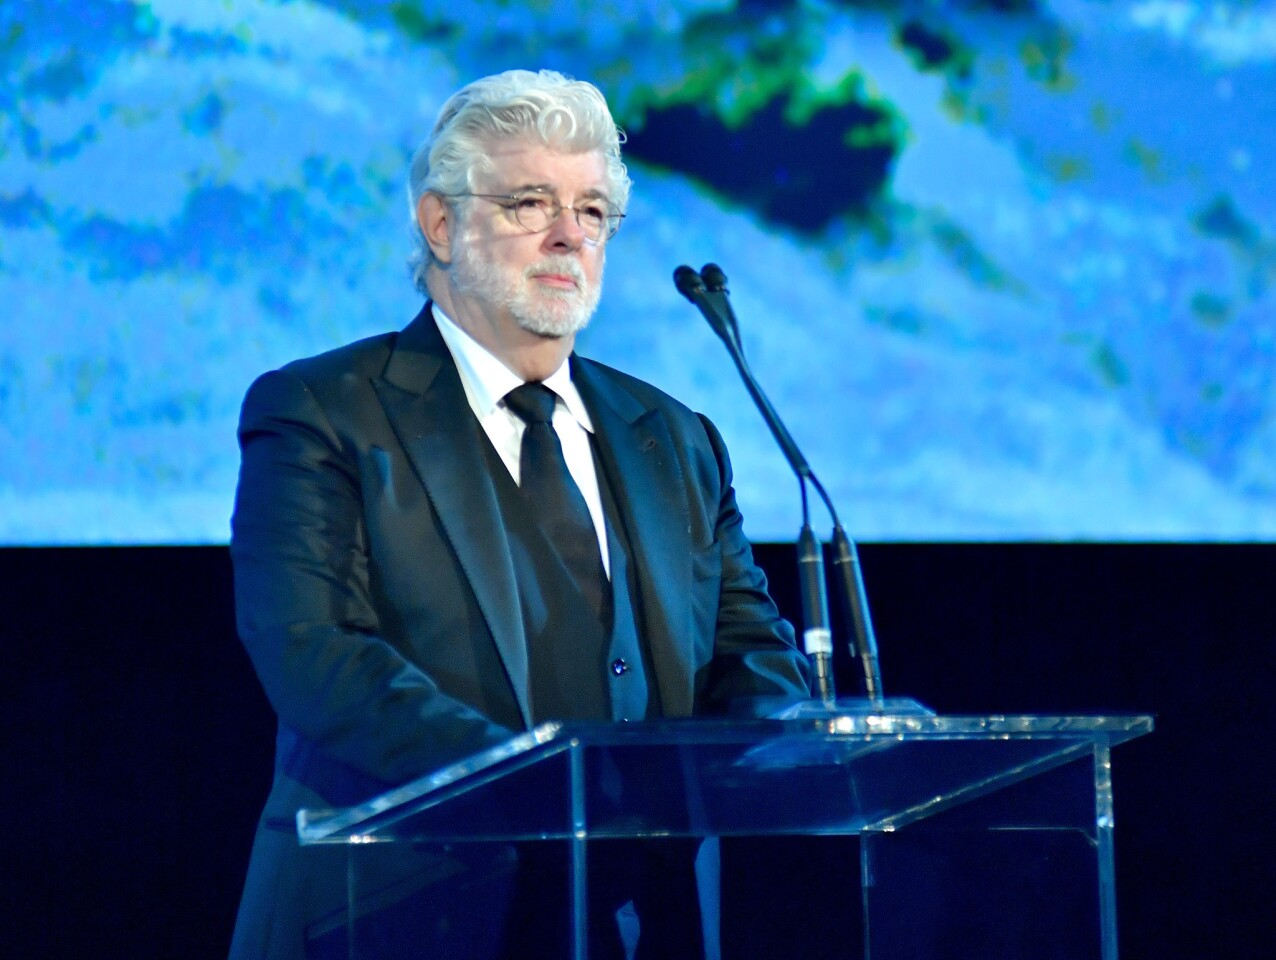 Honoree George Lucas accepts an award during the 2017 LACMA Art + Film Gala Honoring Mark Bradford and George Lucas at LACMA in Los Angeles.